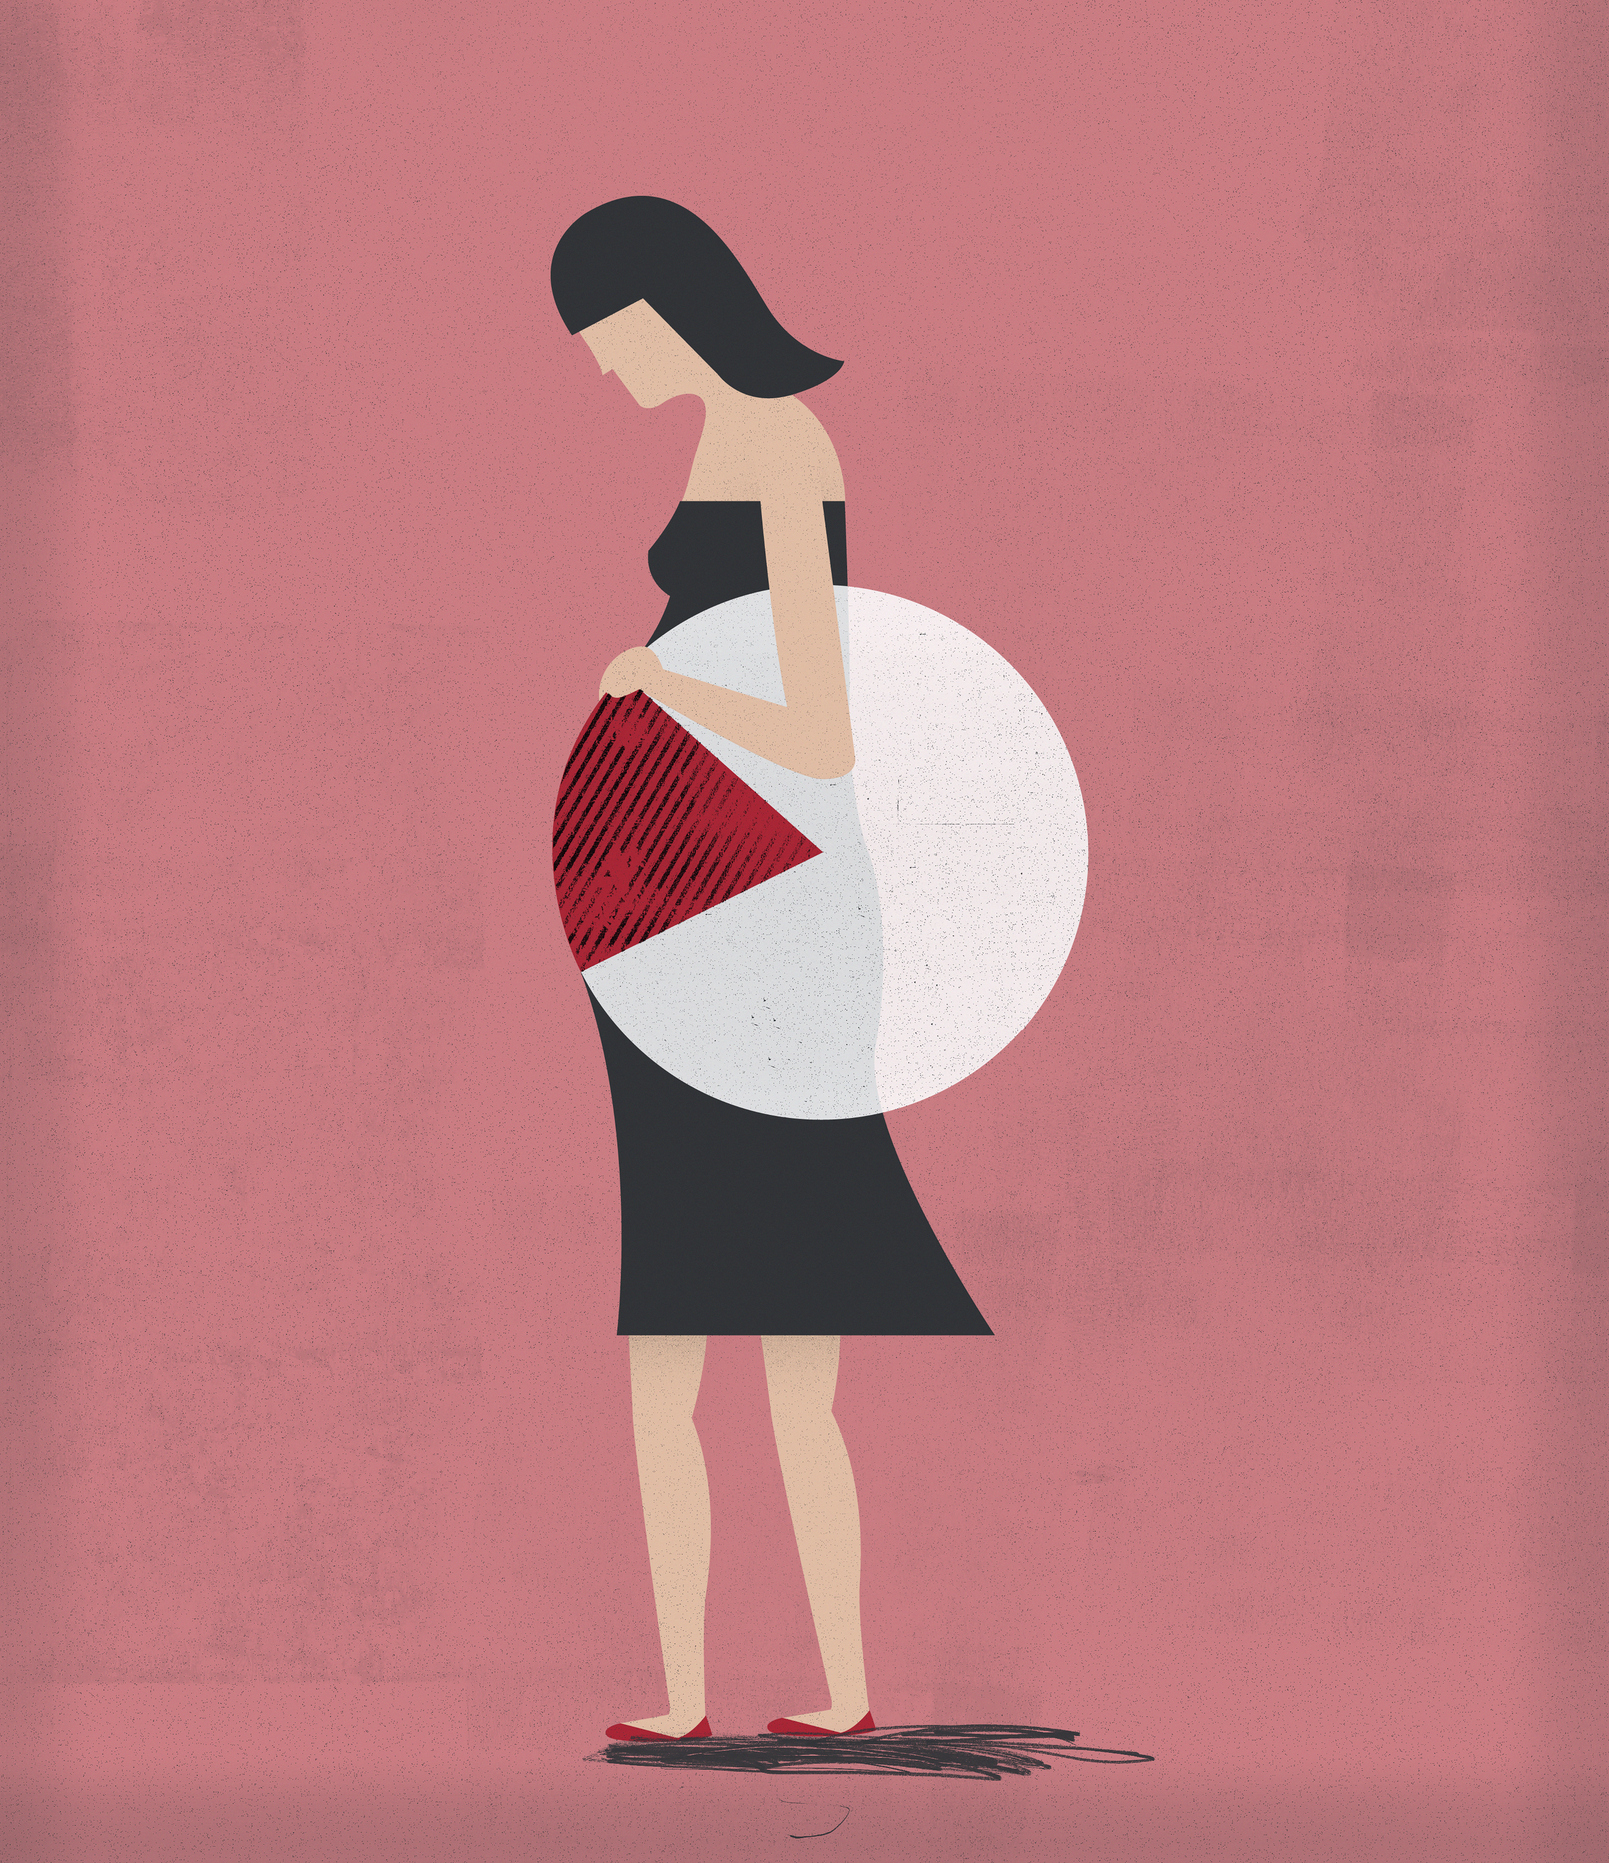 An illustration of a pregnant woman with a pie chart over her belly.